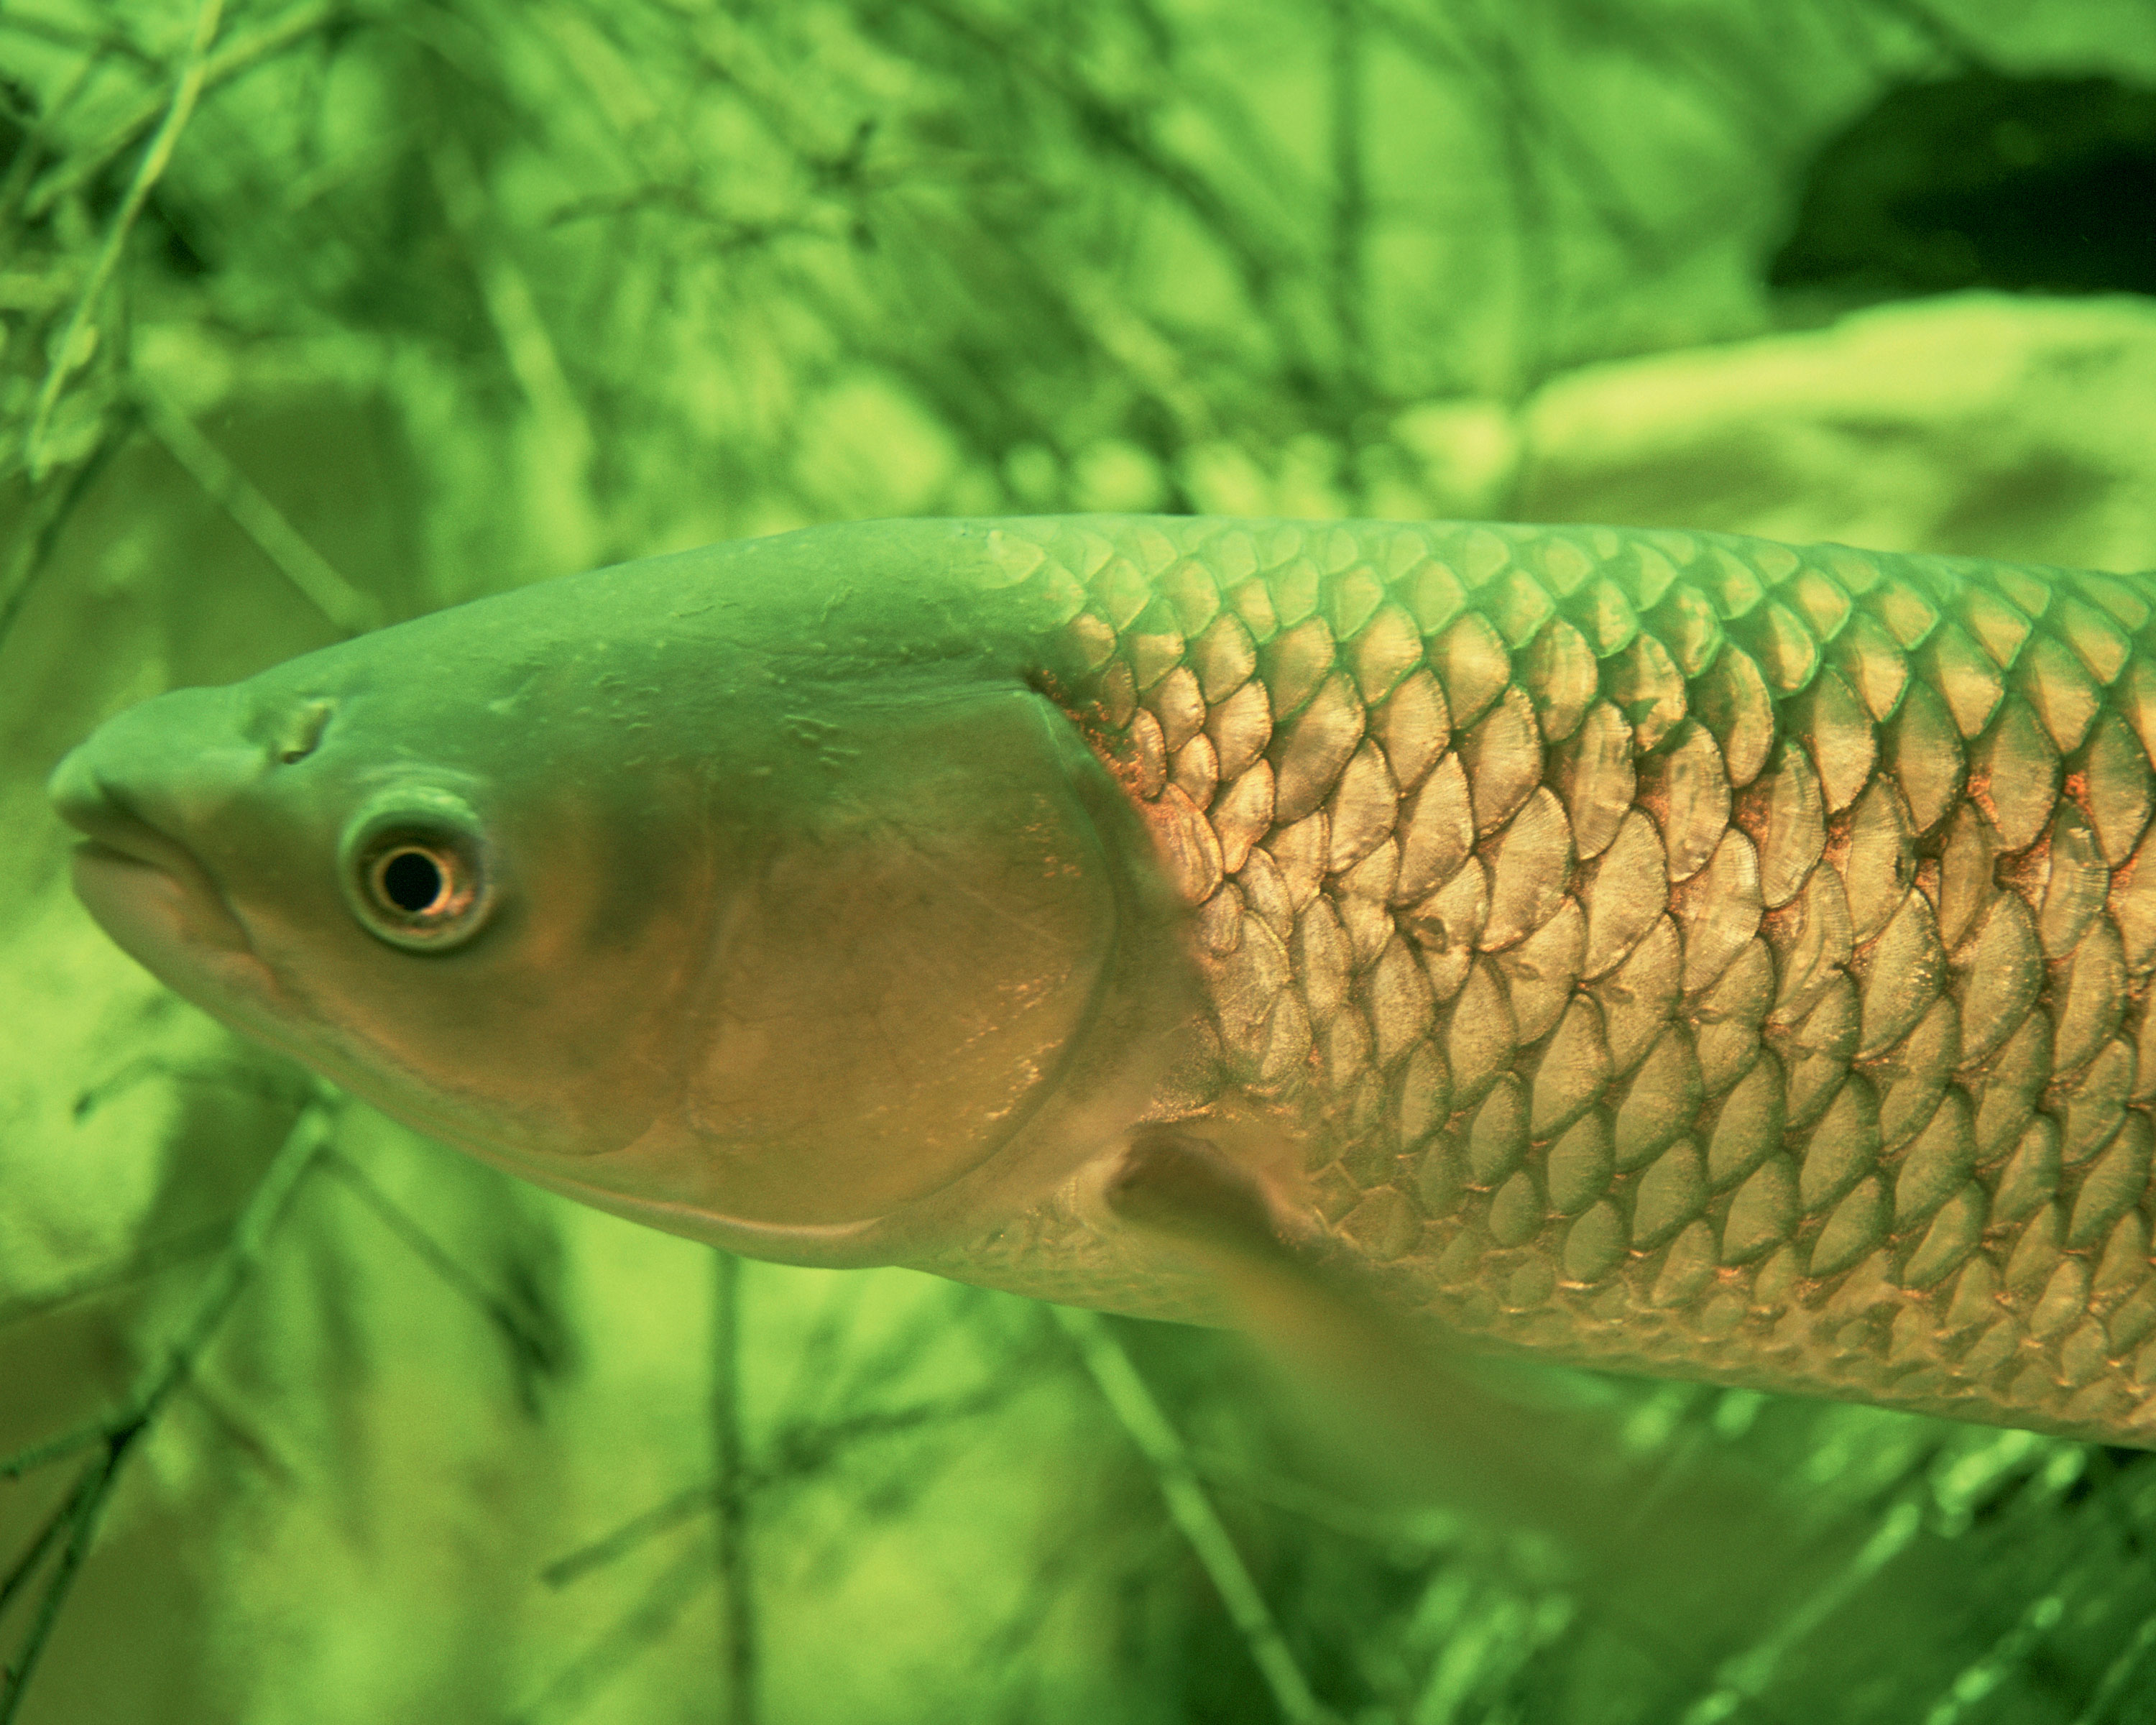 Study on the Risk of Grass Carp in the Great Lakes